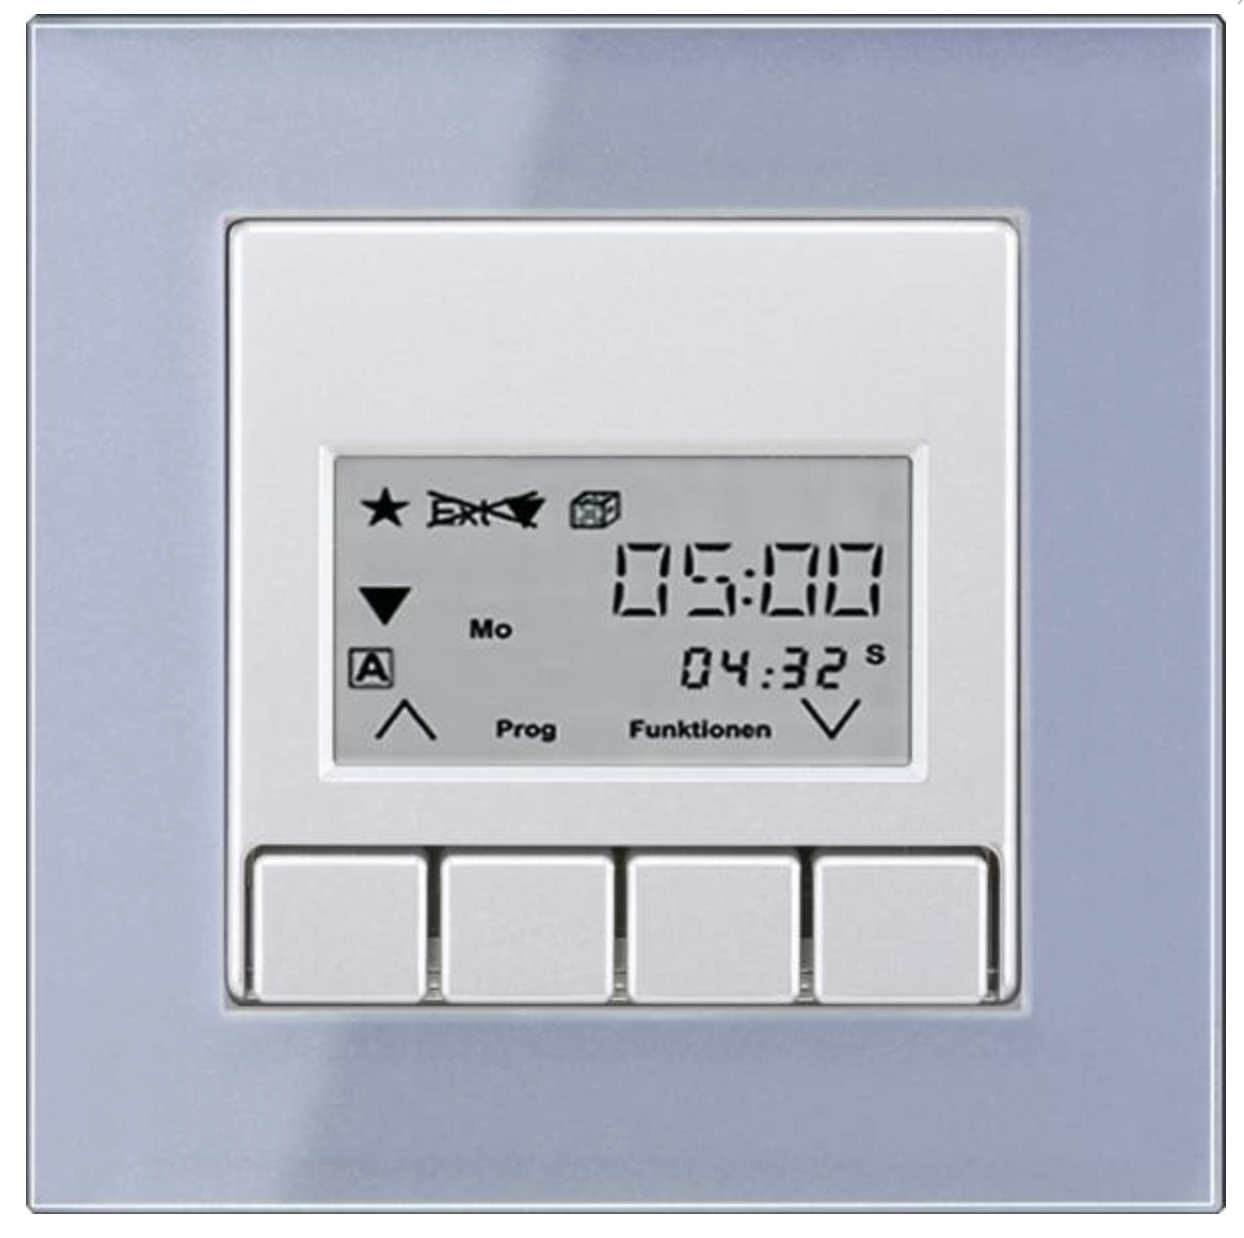 JUNG Blinds control, Smart control, room controller, Technology for ...